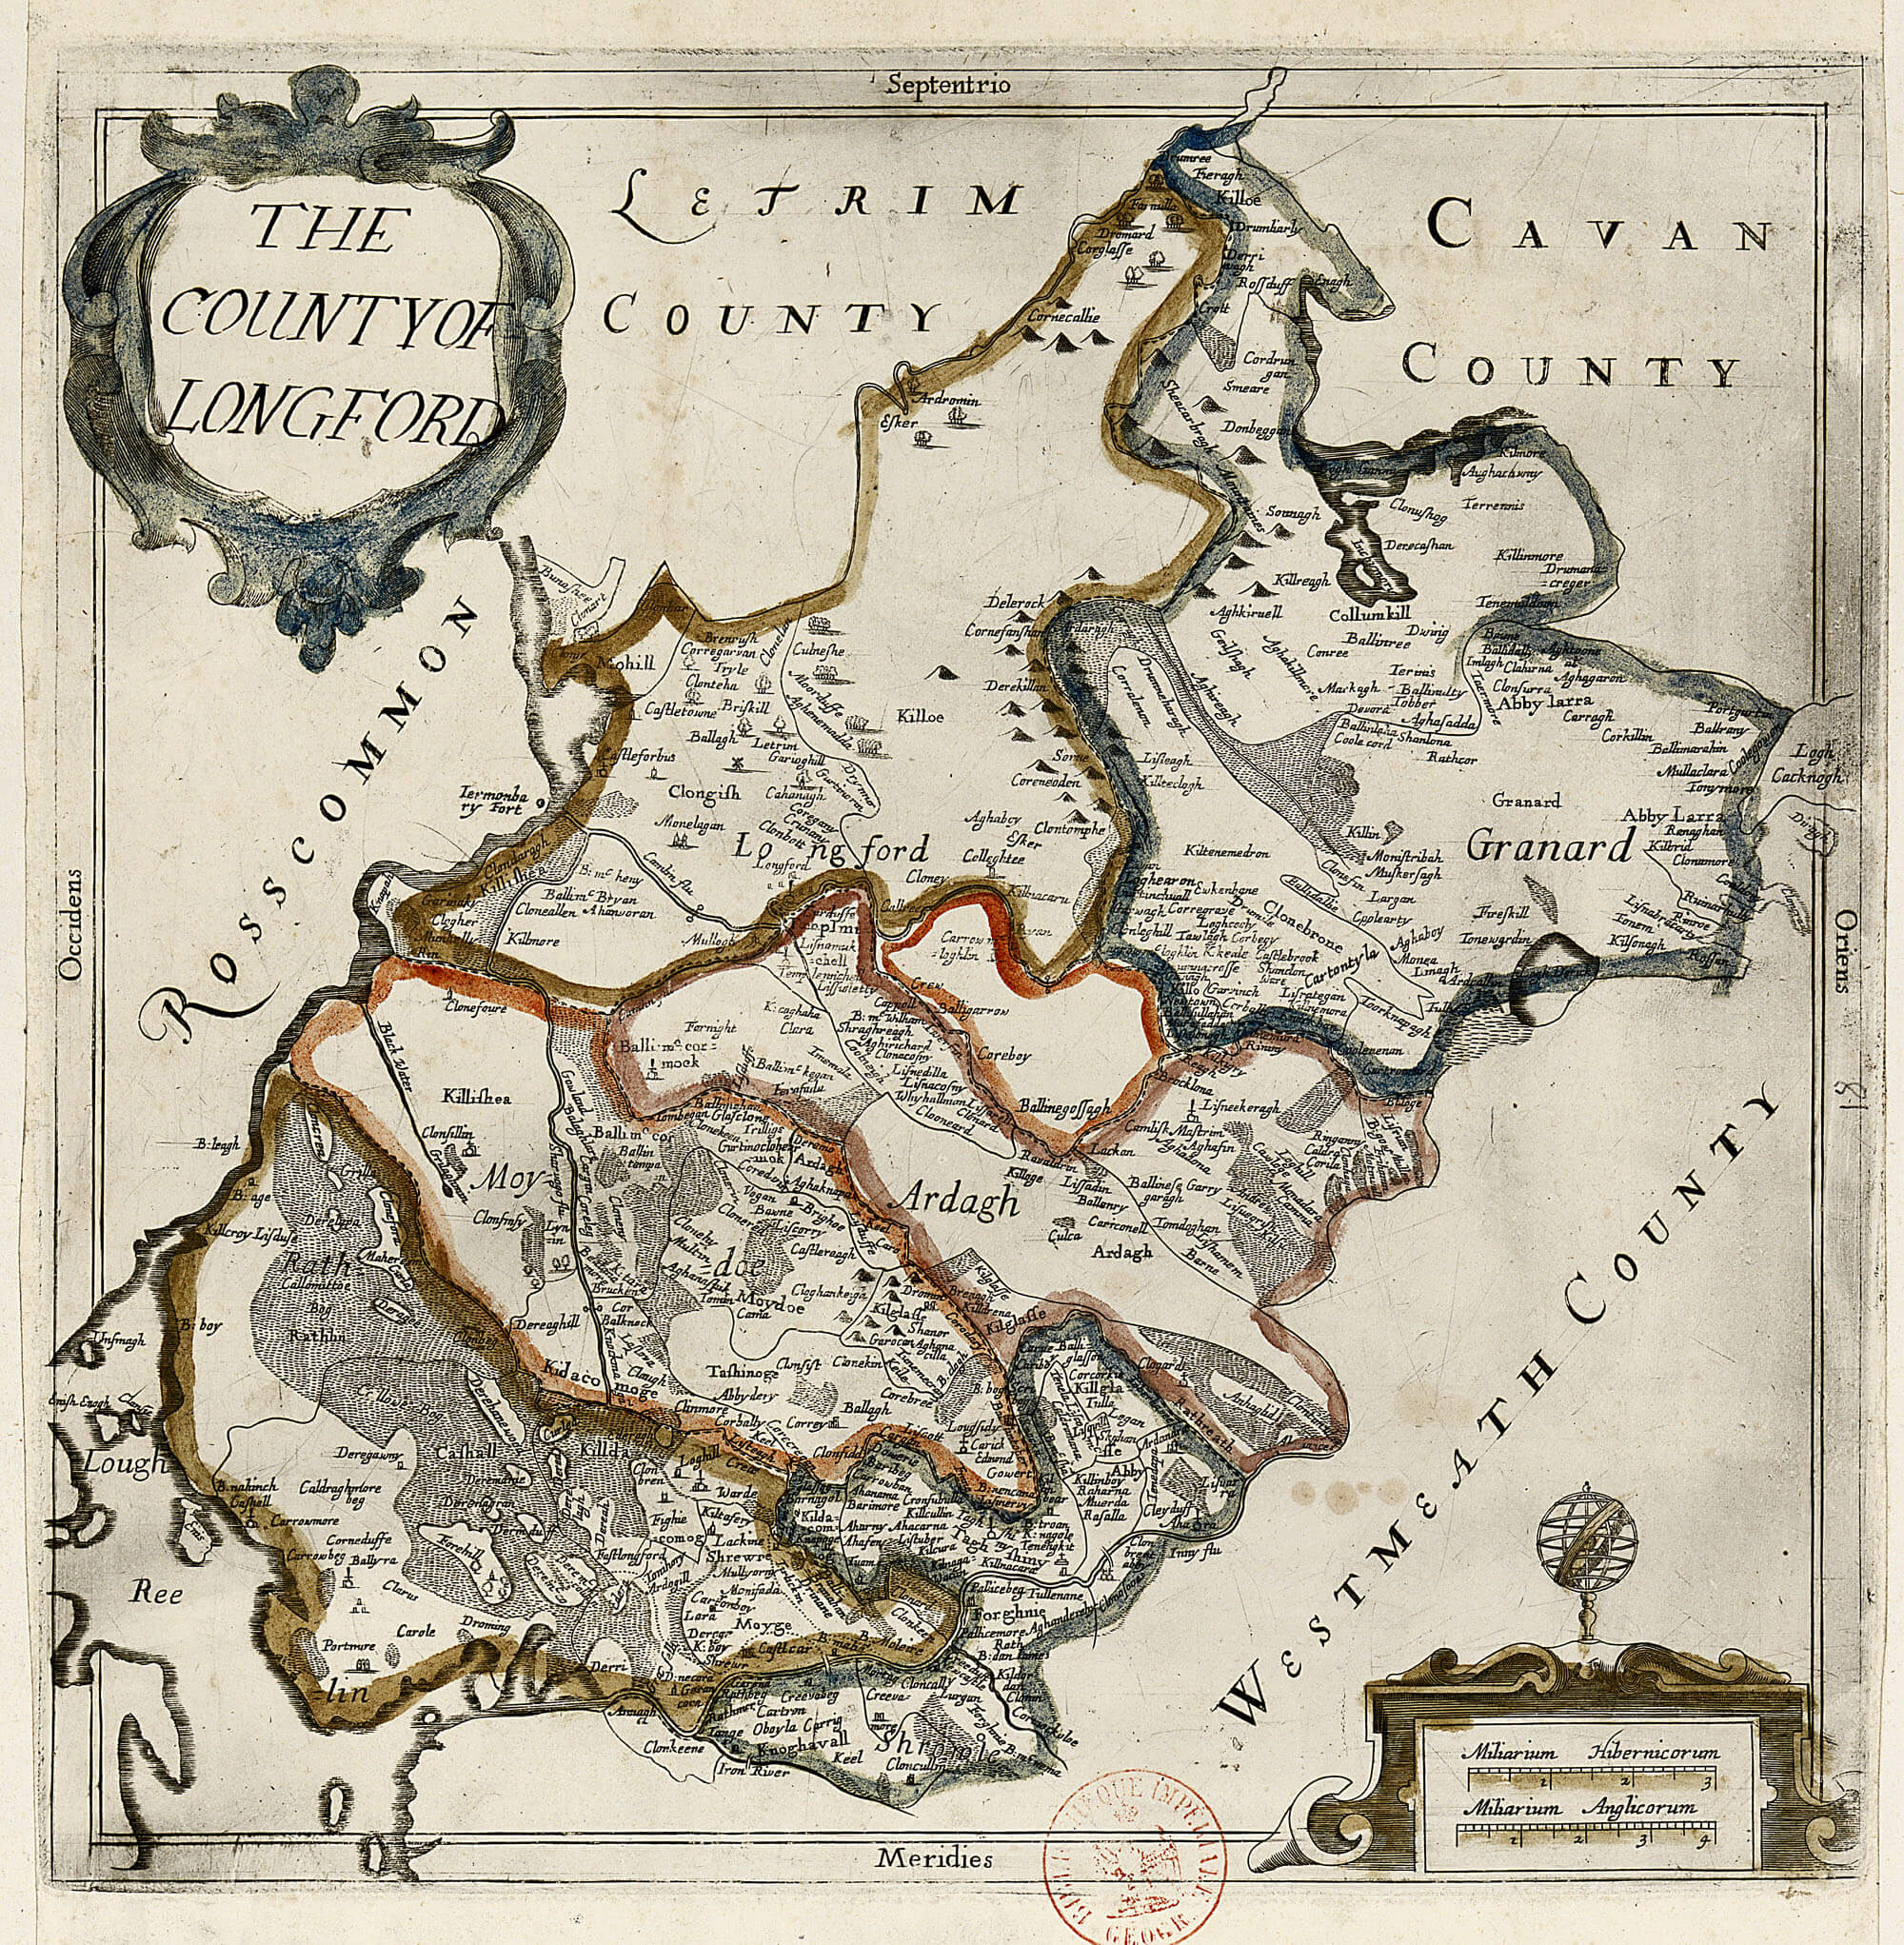 Map Of Ireland Longford.Ireland Barony Maps County Longford L Brown Collection